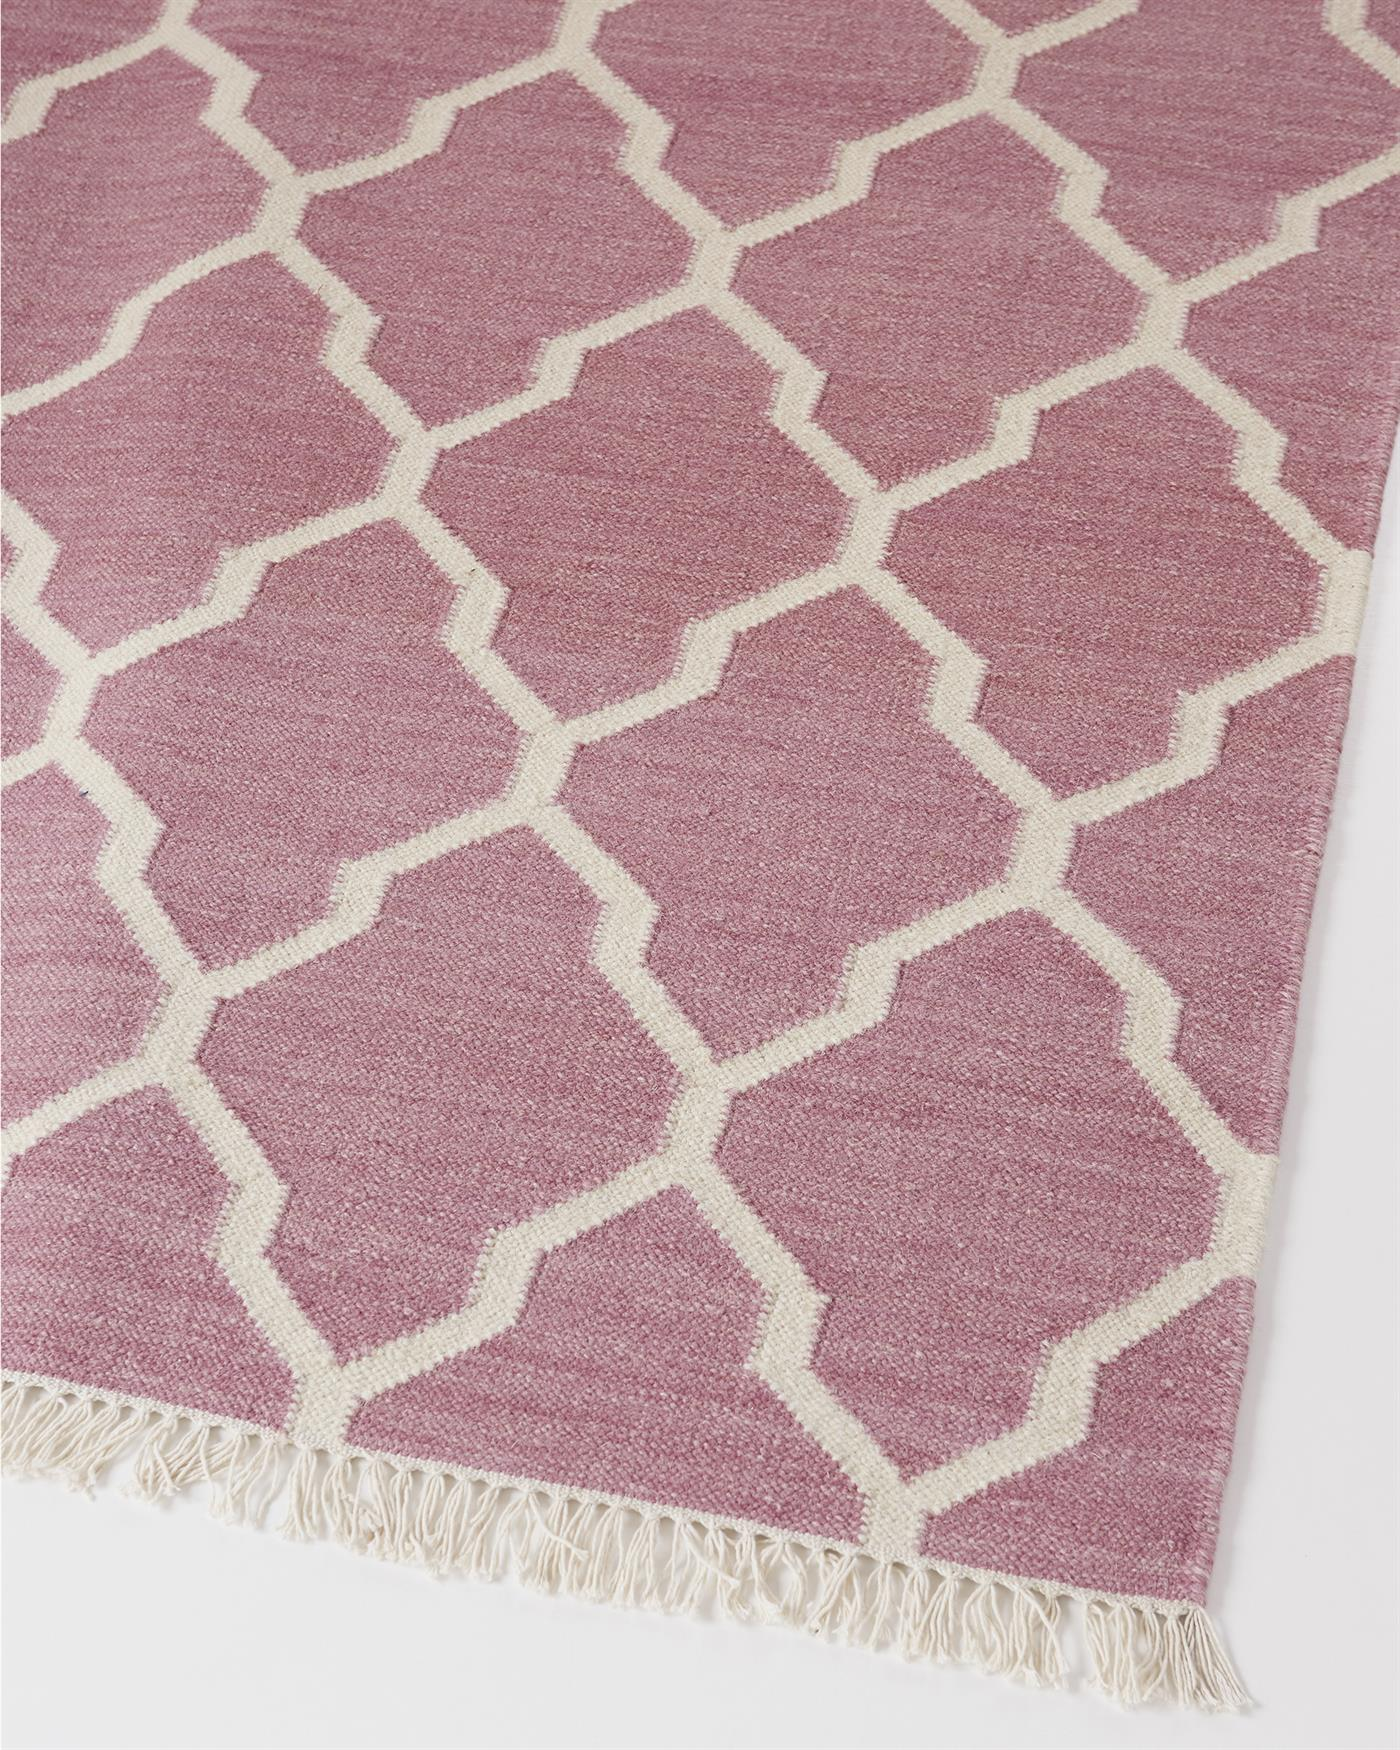 Teppich Pink Finest Kuhfell Teppich Pink X Cm With